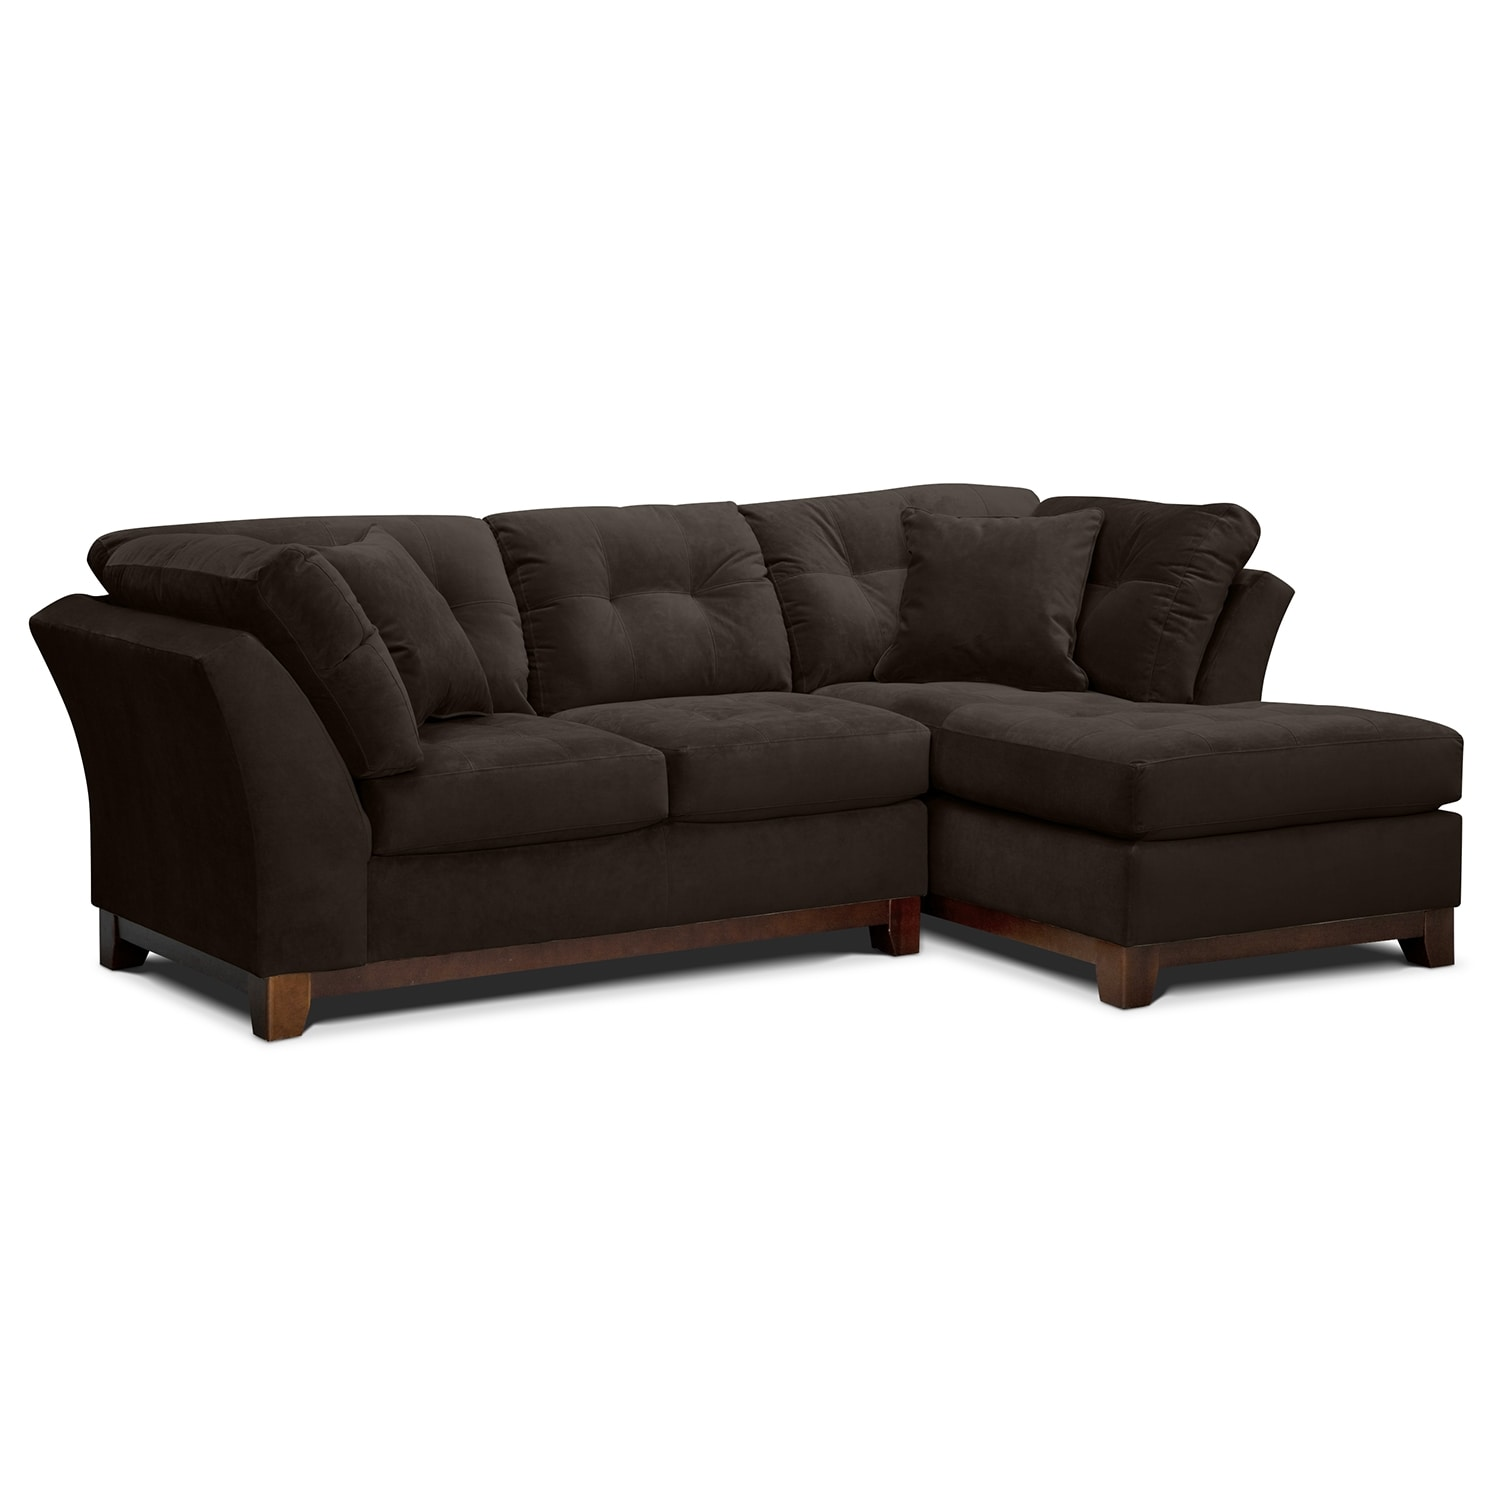 Solace Chocolate Ii Upholstery 2 Pc Sectional Alternate Reverse Value City Furniture